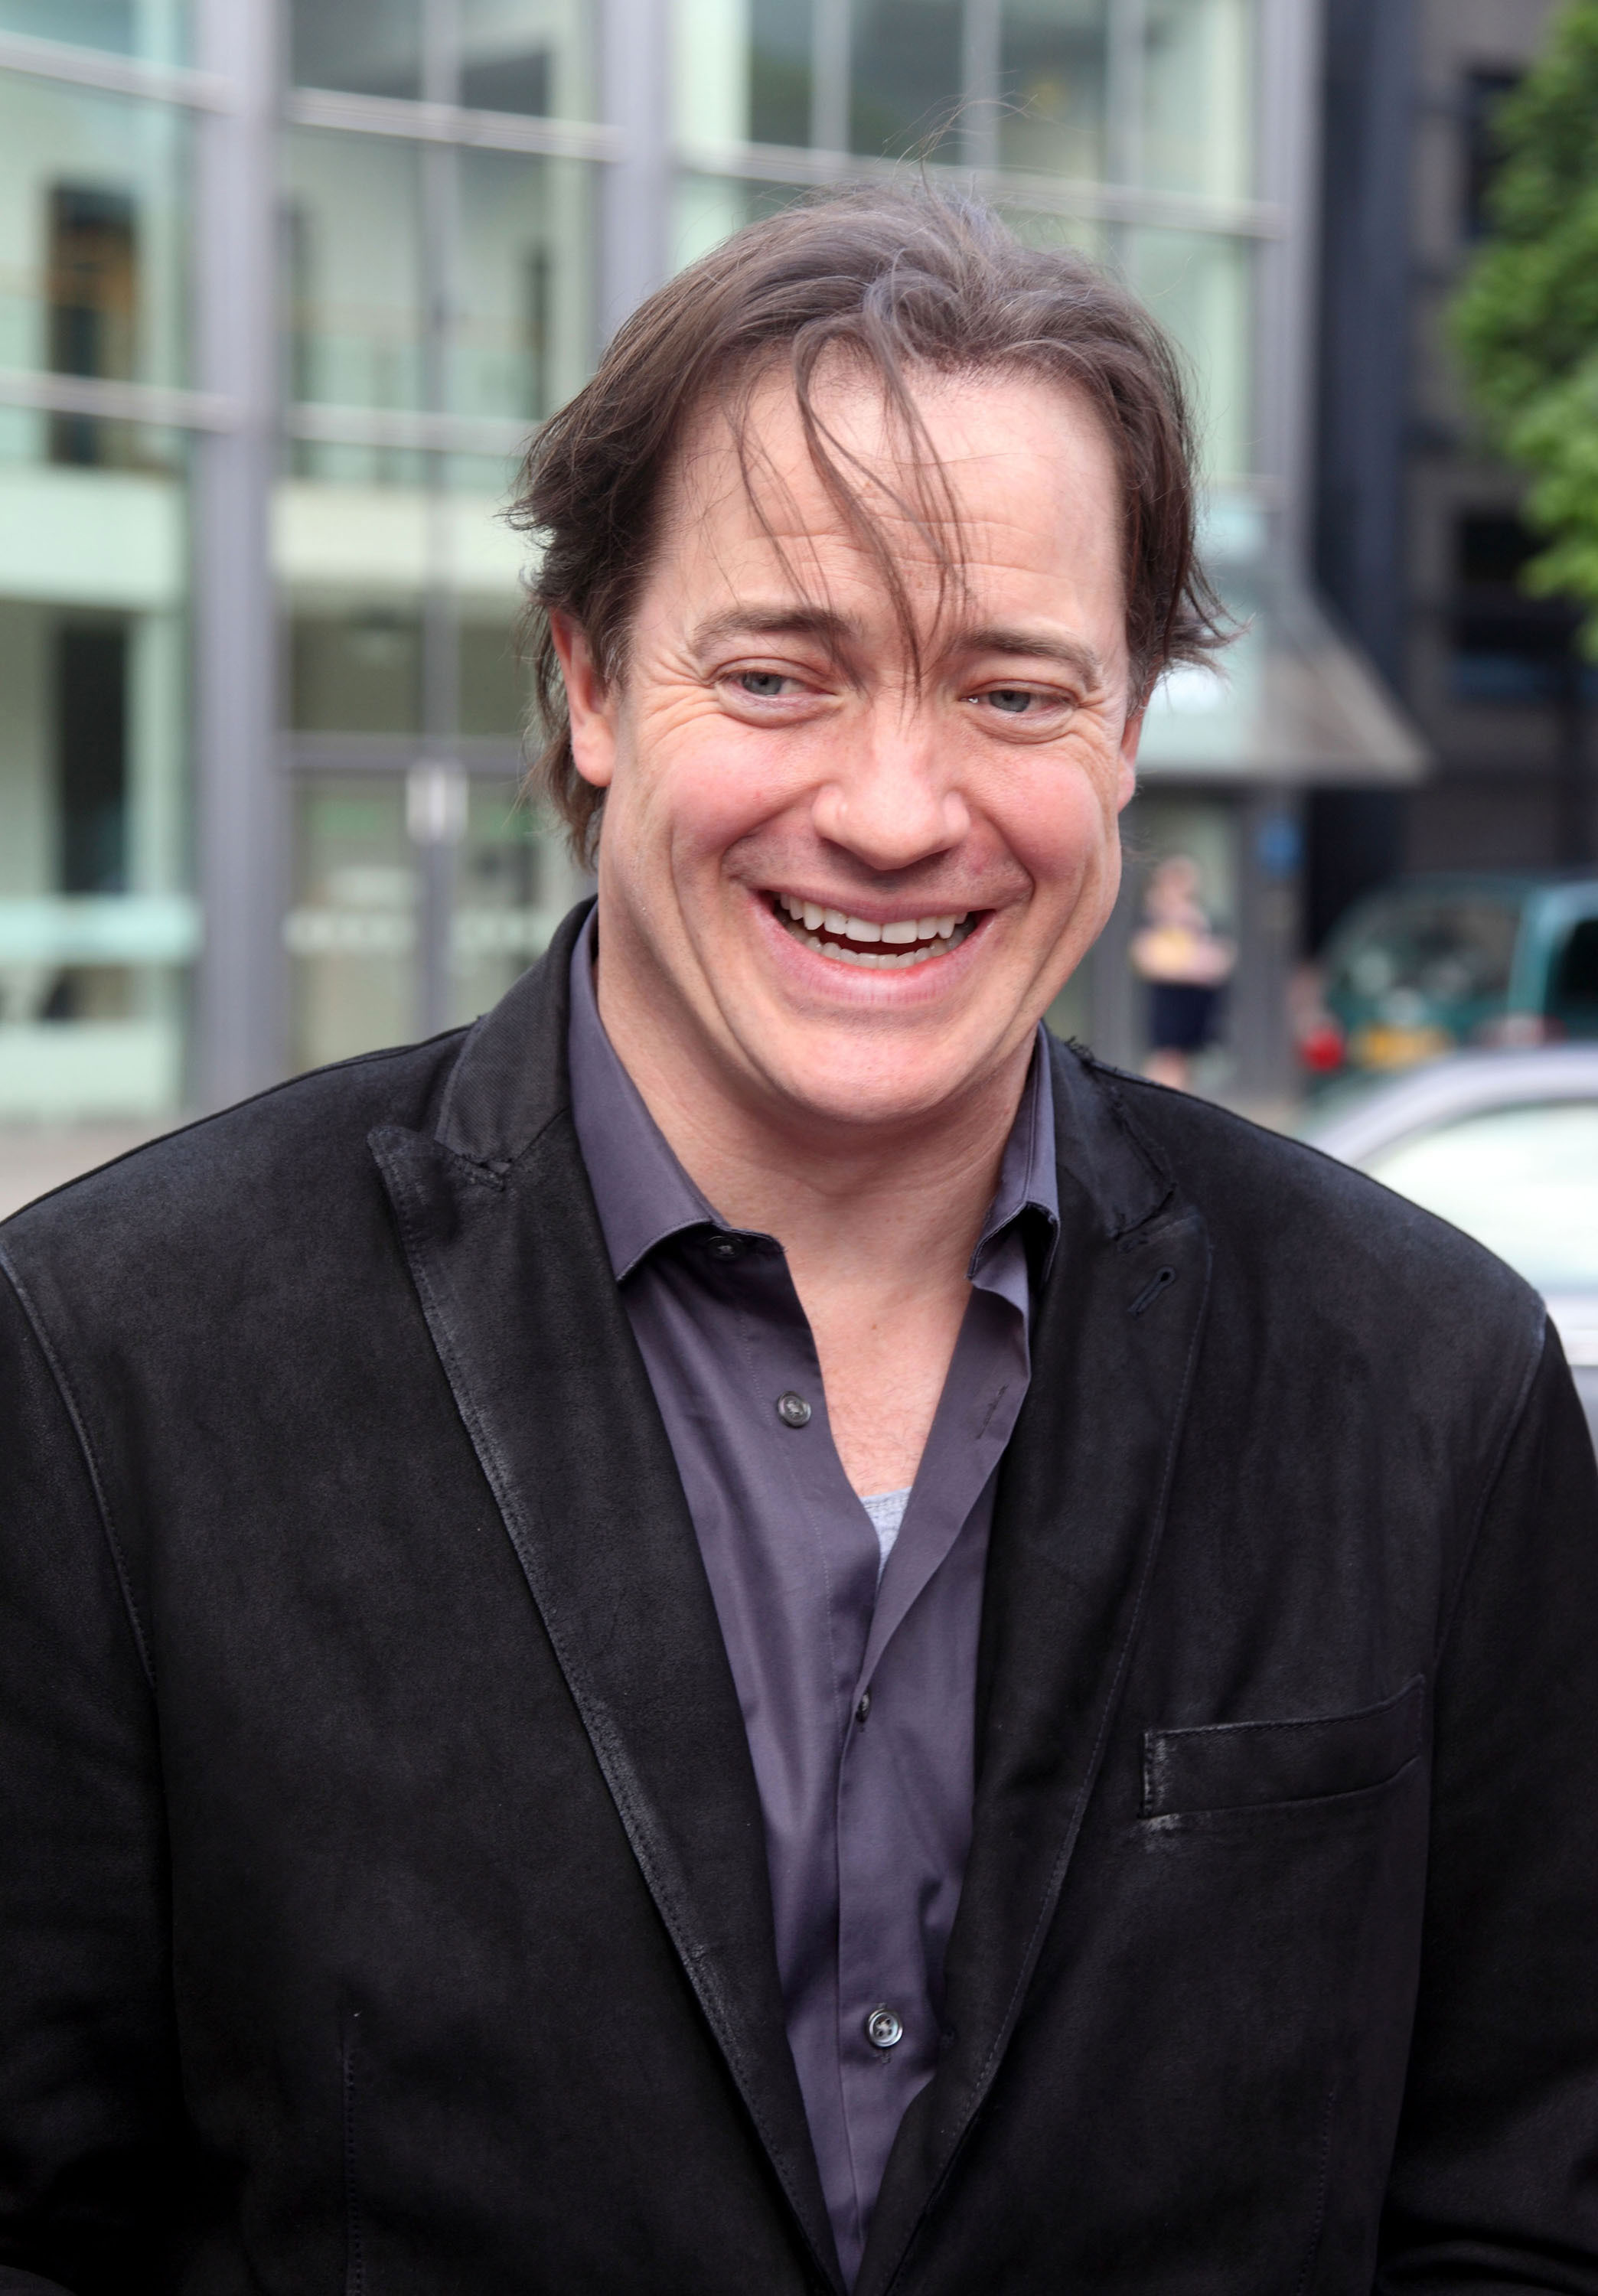 brendan fraser now